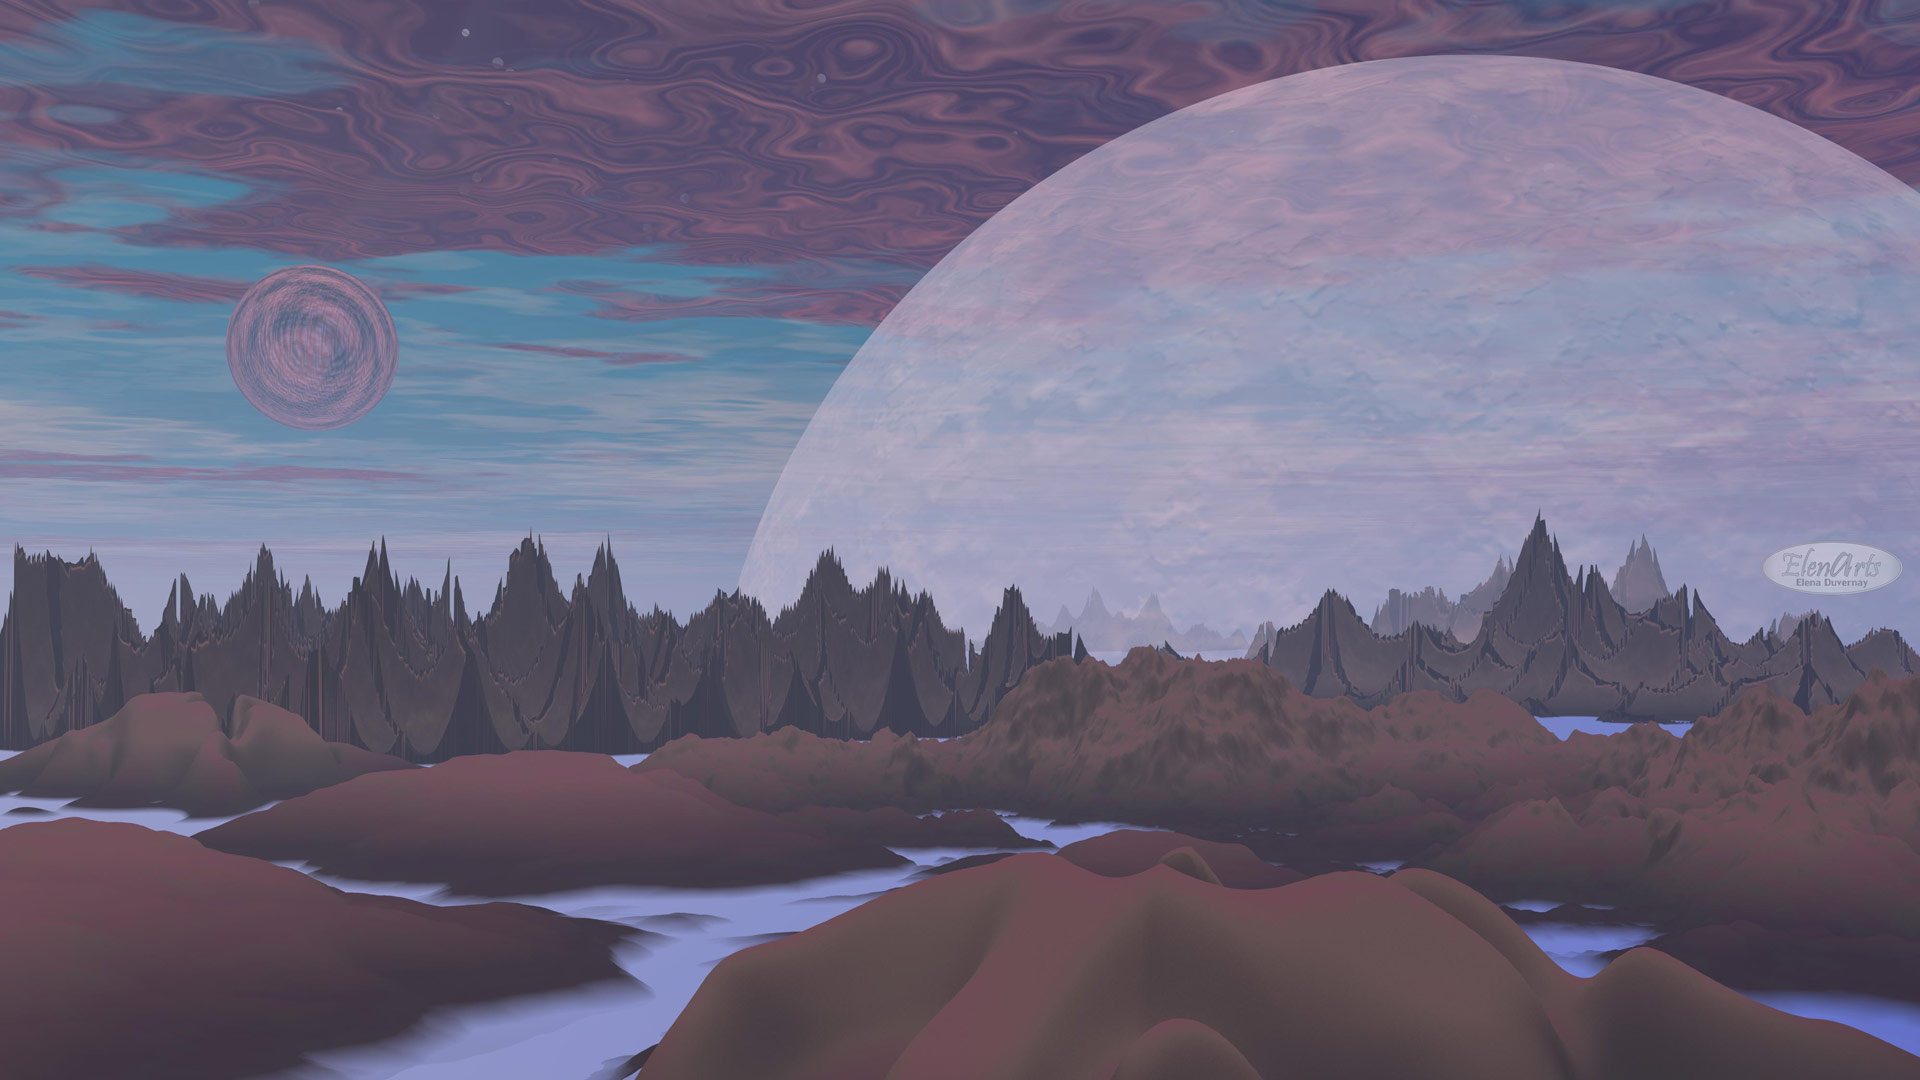 Violet landscape with rock mountains, trees, fog and planets – 3D renders_water_big_moon_cloudy_sky_standard_web